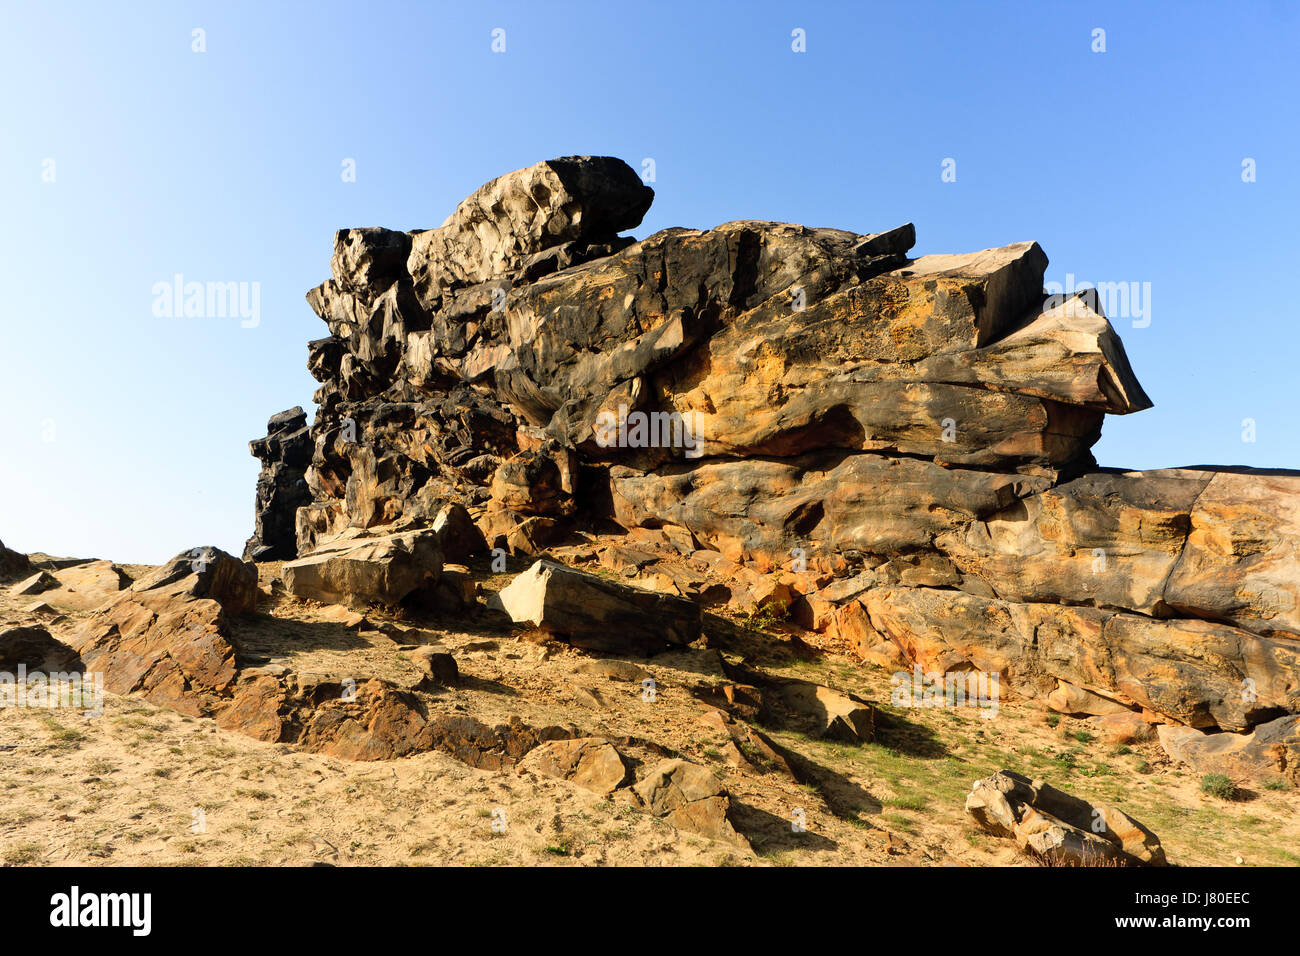 formation rock resin myth saw stone formation rock sightseeing nature-sanctuary - Stock Image